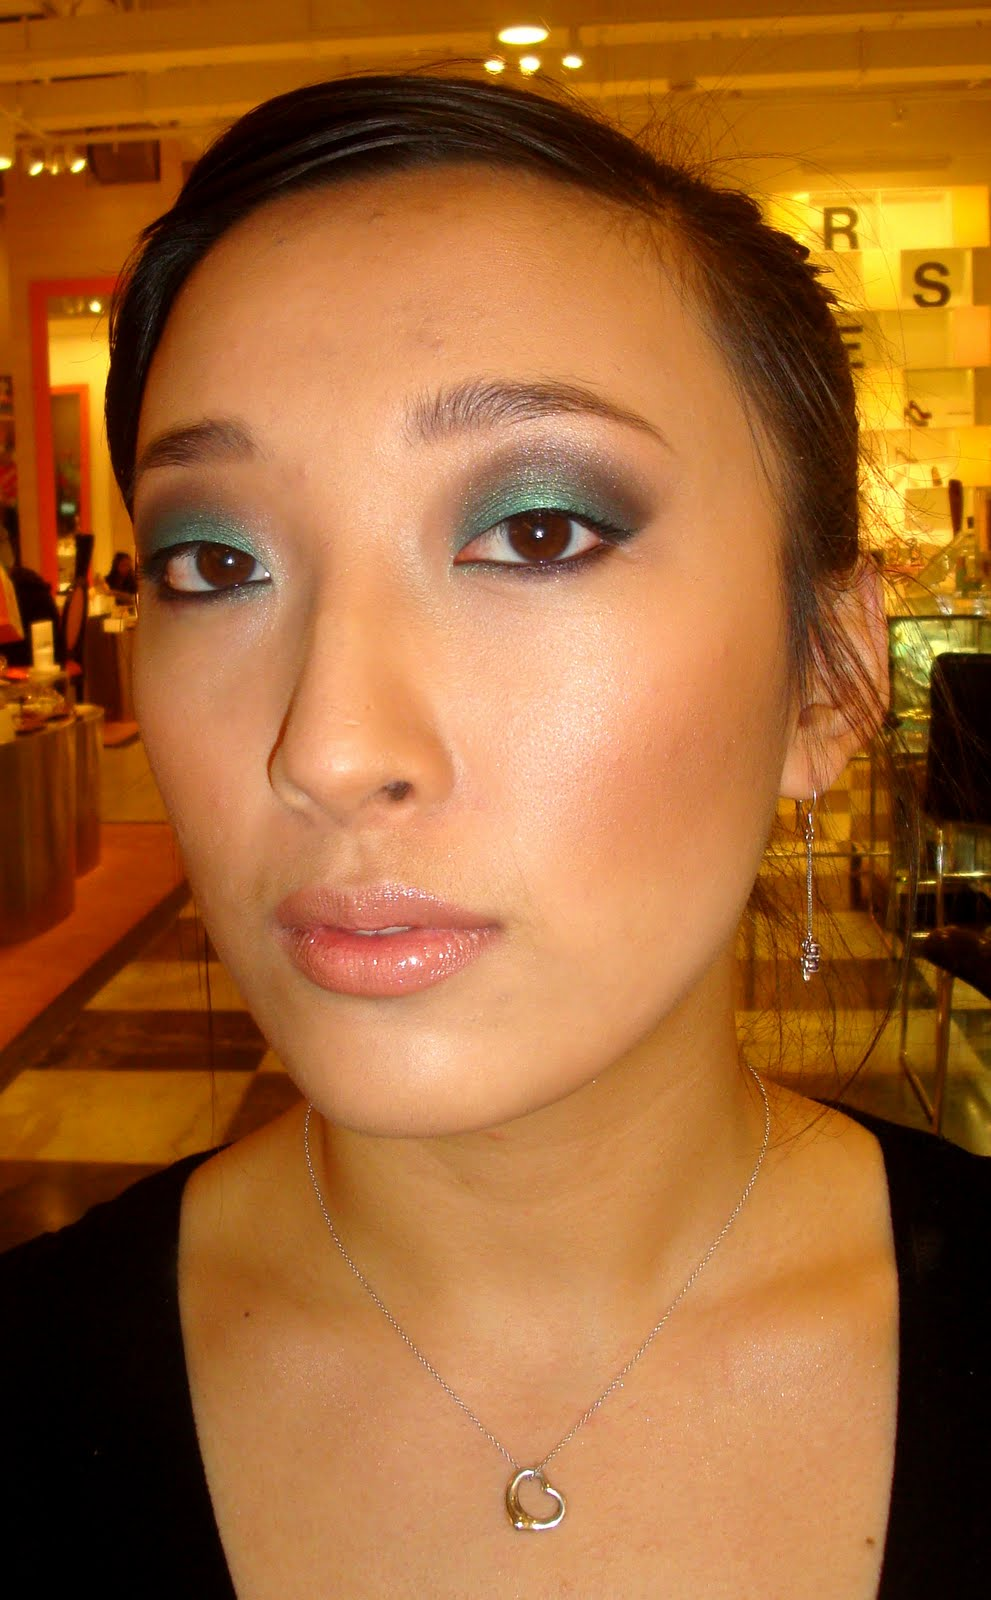 Morning Makeup Call Jenny How To Do Dramatic Green Eye Shadow By